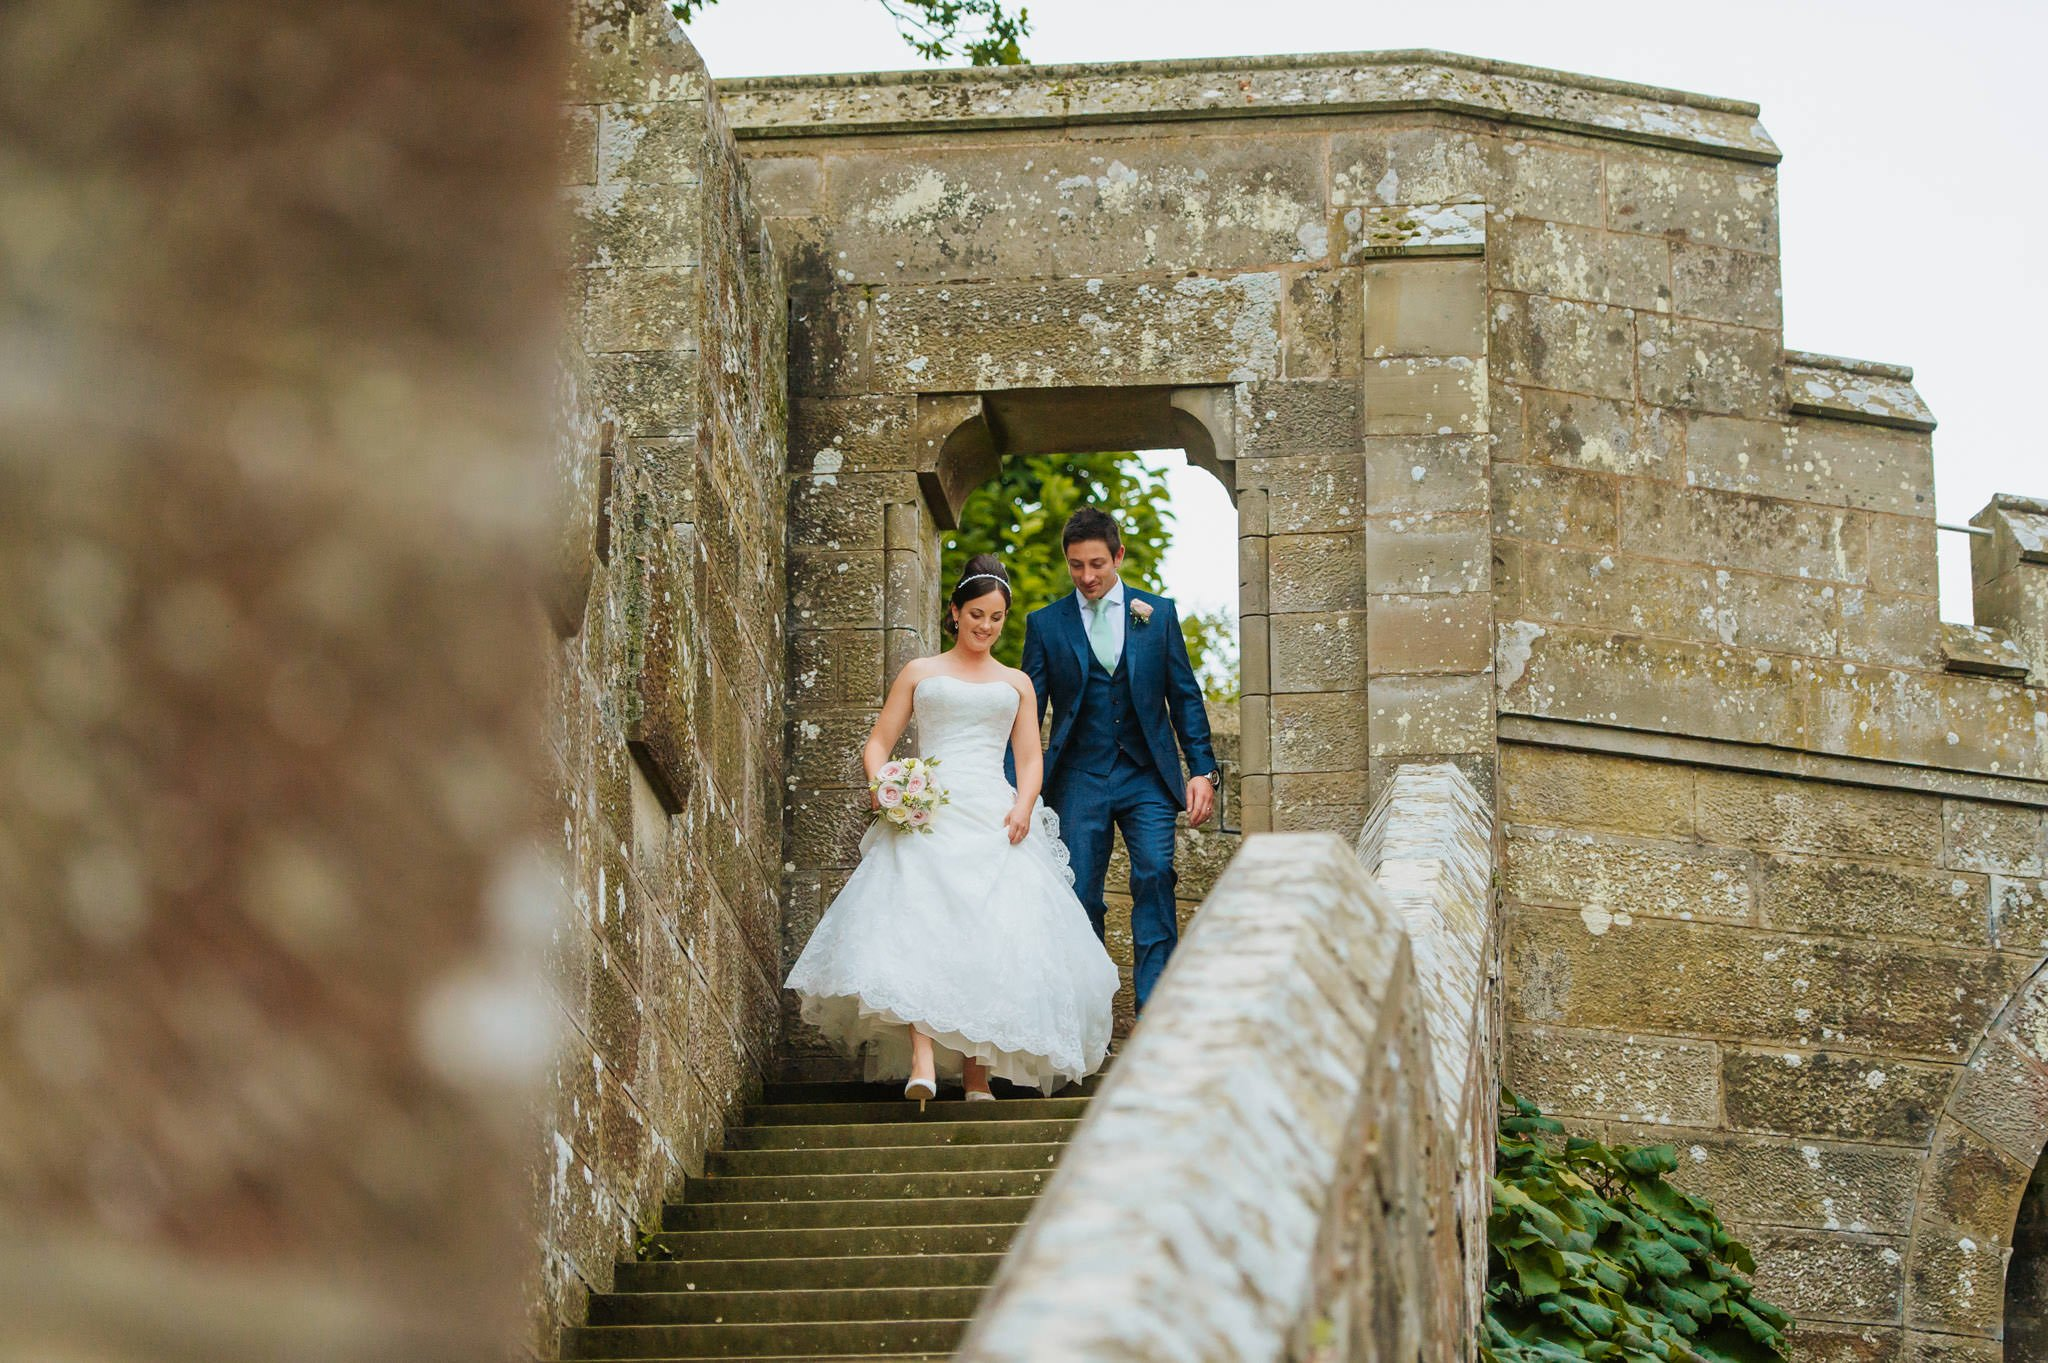 eastnor castle wedding pictures 68 - Eastnor Castle wedding photographer Herefordshire, West Midlands - Sarah + Dean